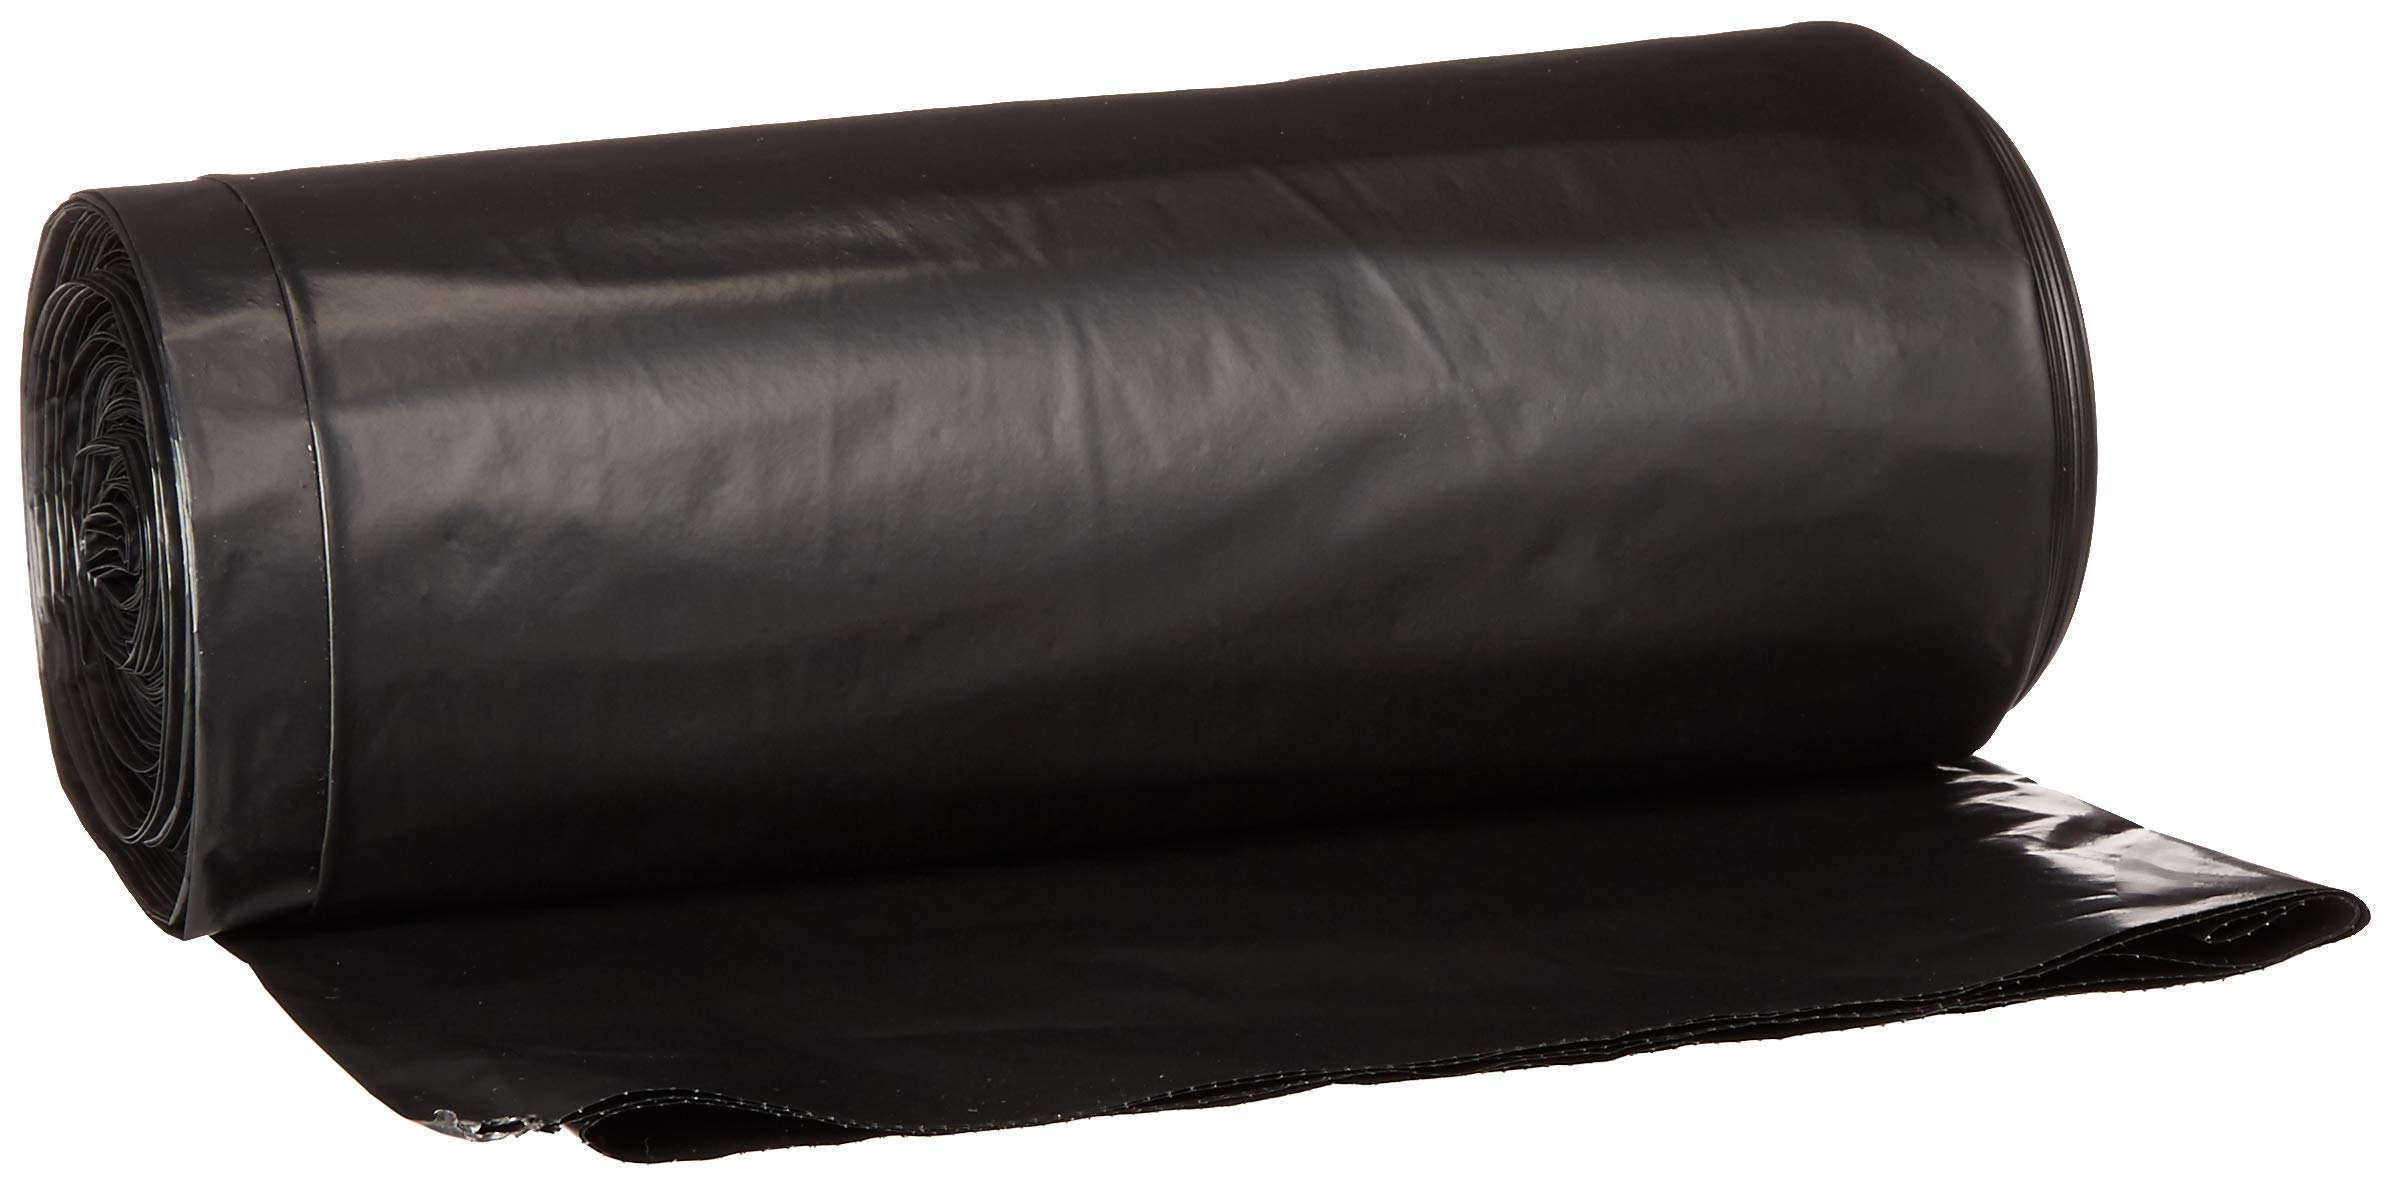 Aserson Heavy Duty Contractor Trash Garbage Bags, 3MIL Strengh 42 Gallon 32 inches x 46 inches - Black (32 inches X 46 inches, Black) ... (Black, 20 Per Case)